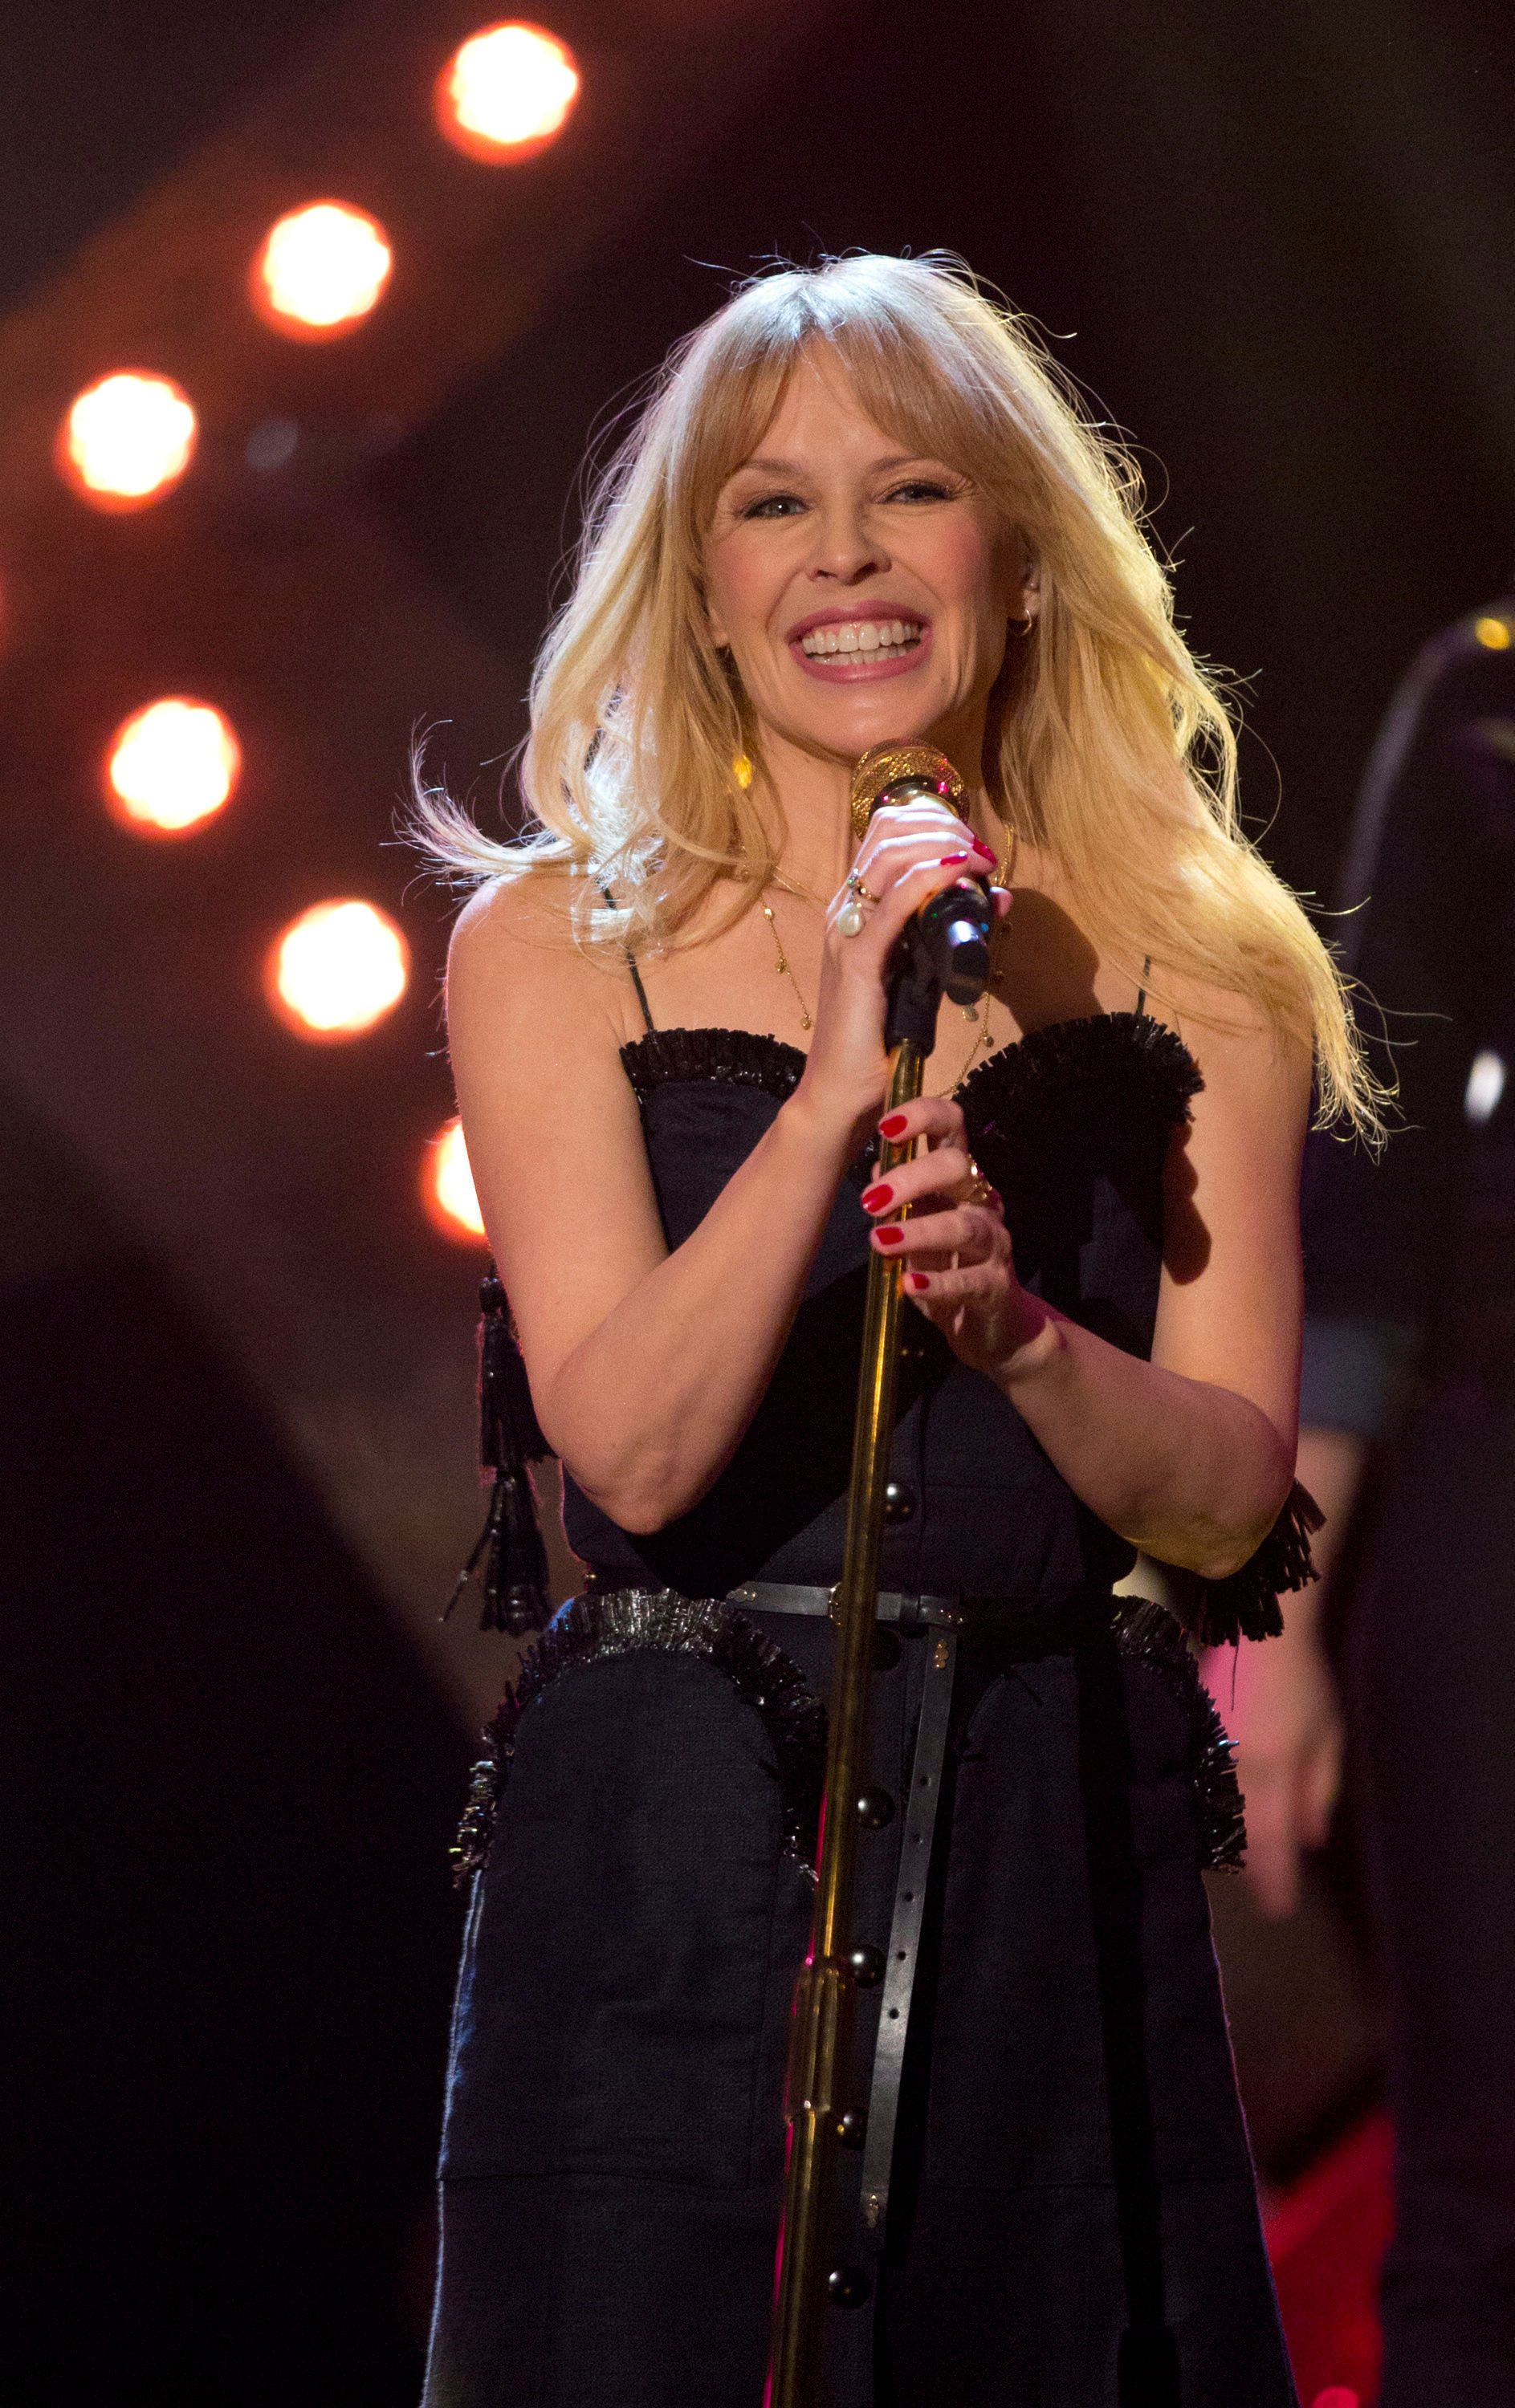 Kylie Minogue Has Finally Been Confirmed For Glastonbury